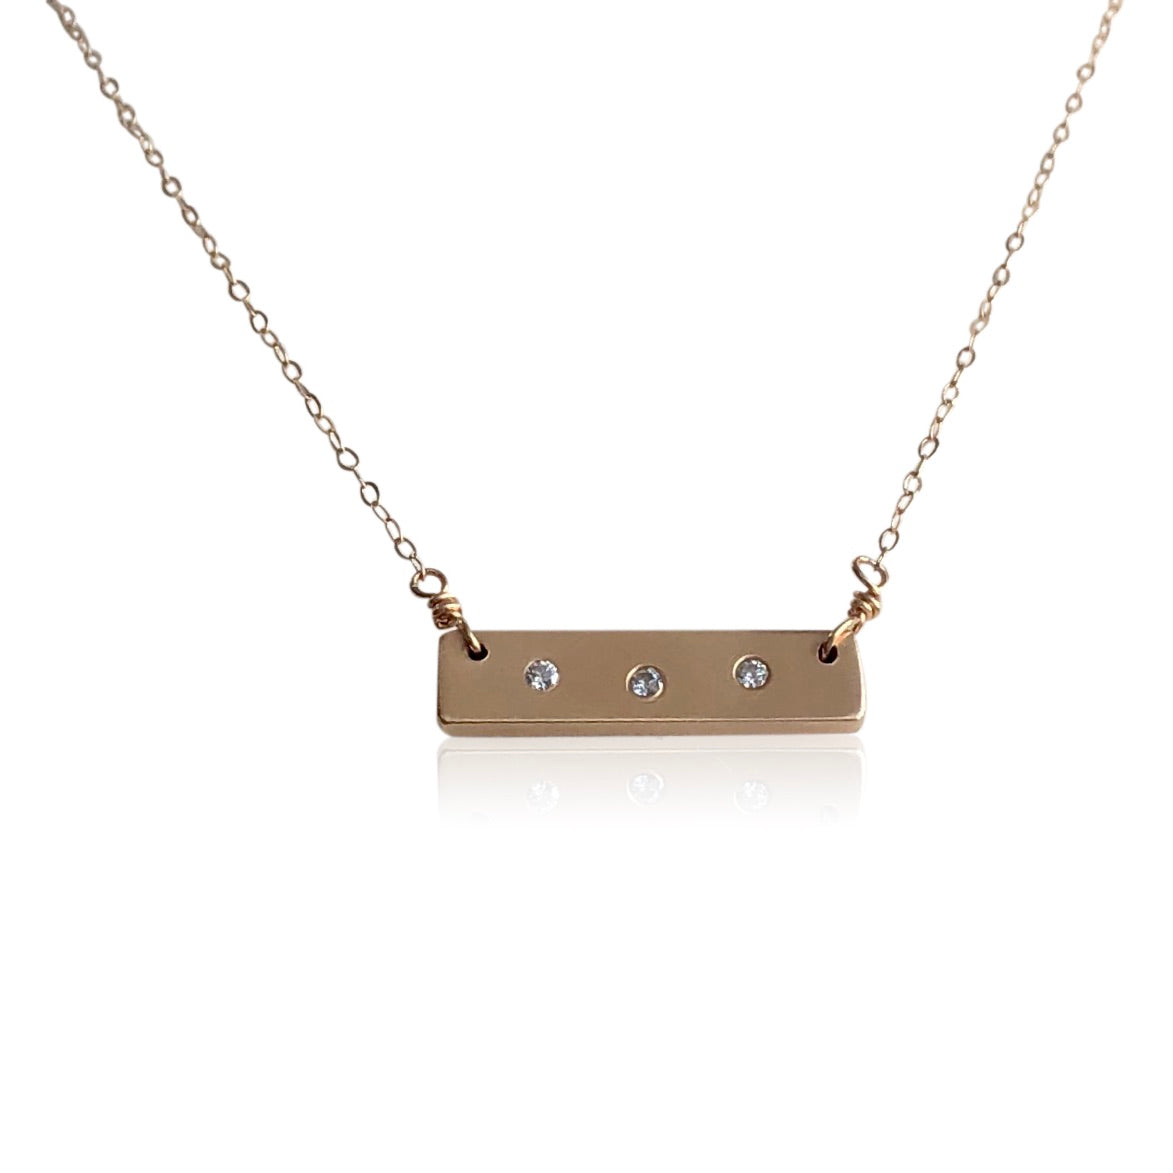 "NG1 14kt Gold Bar Necklace w 3 Diamonds; 3/4"" x 1/4"" Bar; 16"" Chain"